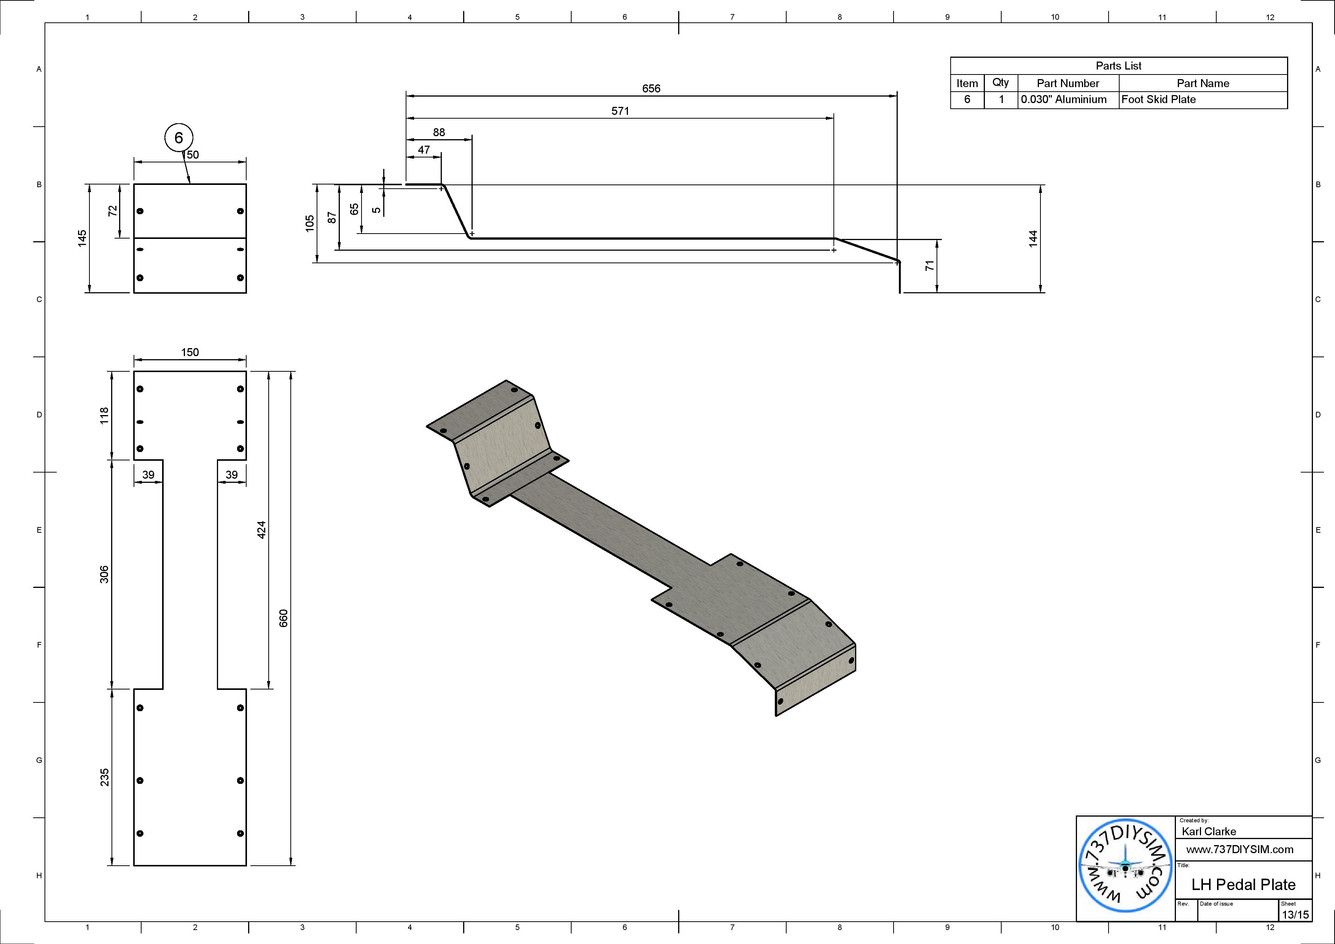 LH Pedal Plate Drawing v1-page-013.jpg